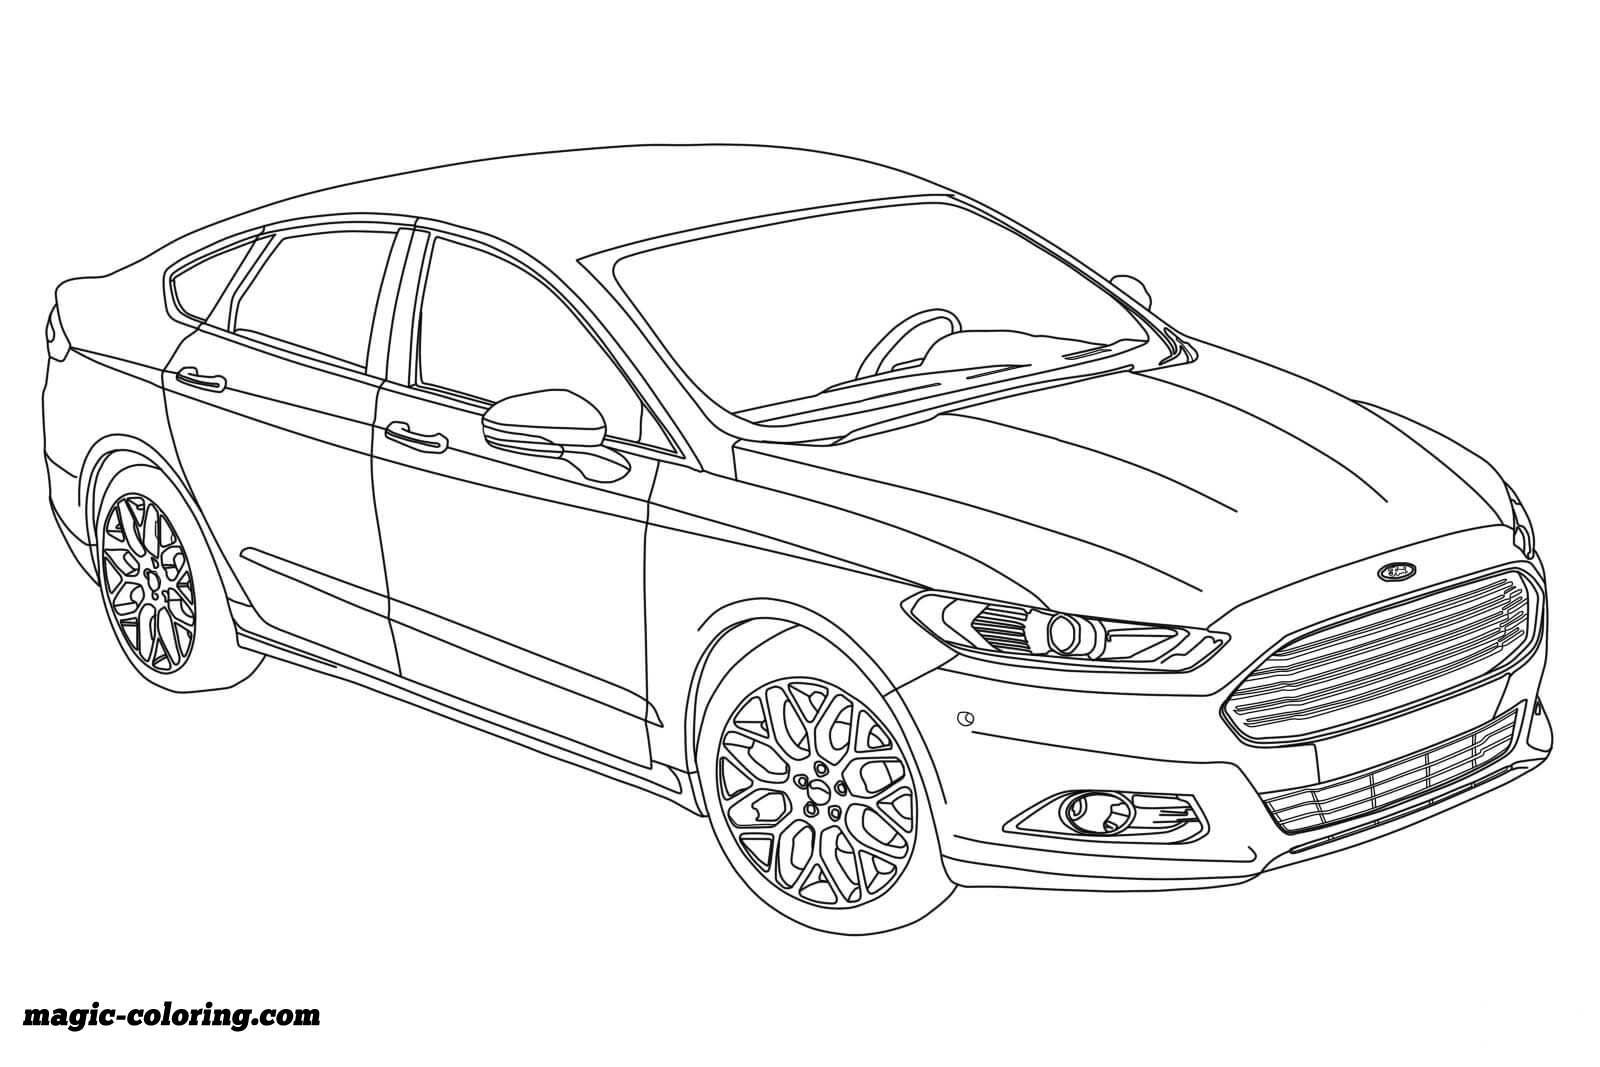 2015 Ford Fusion Coloring Page Cars Coloring Pages Coloring Pages Fusion Colors